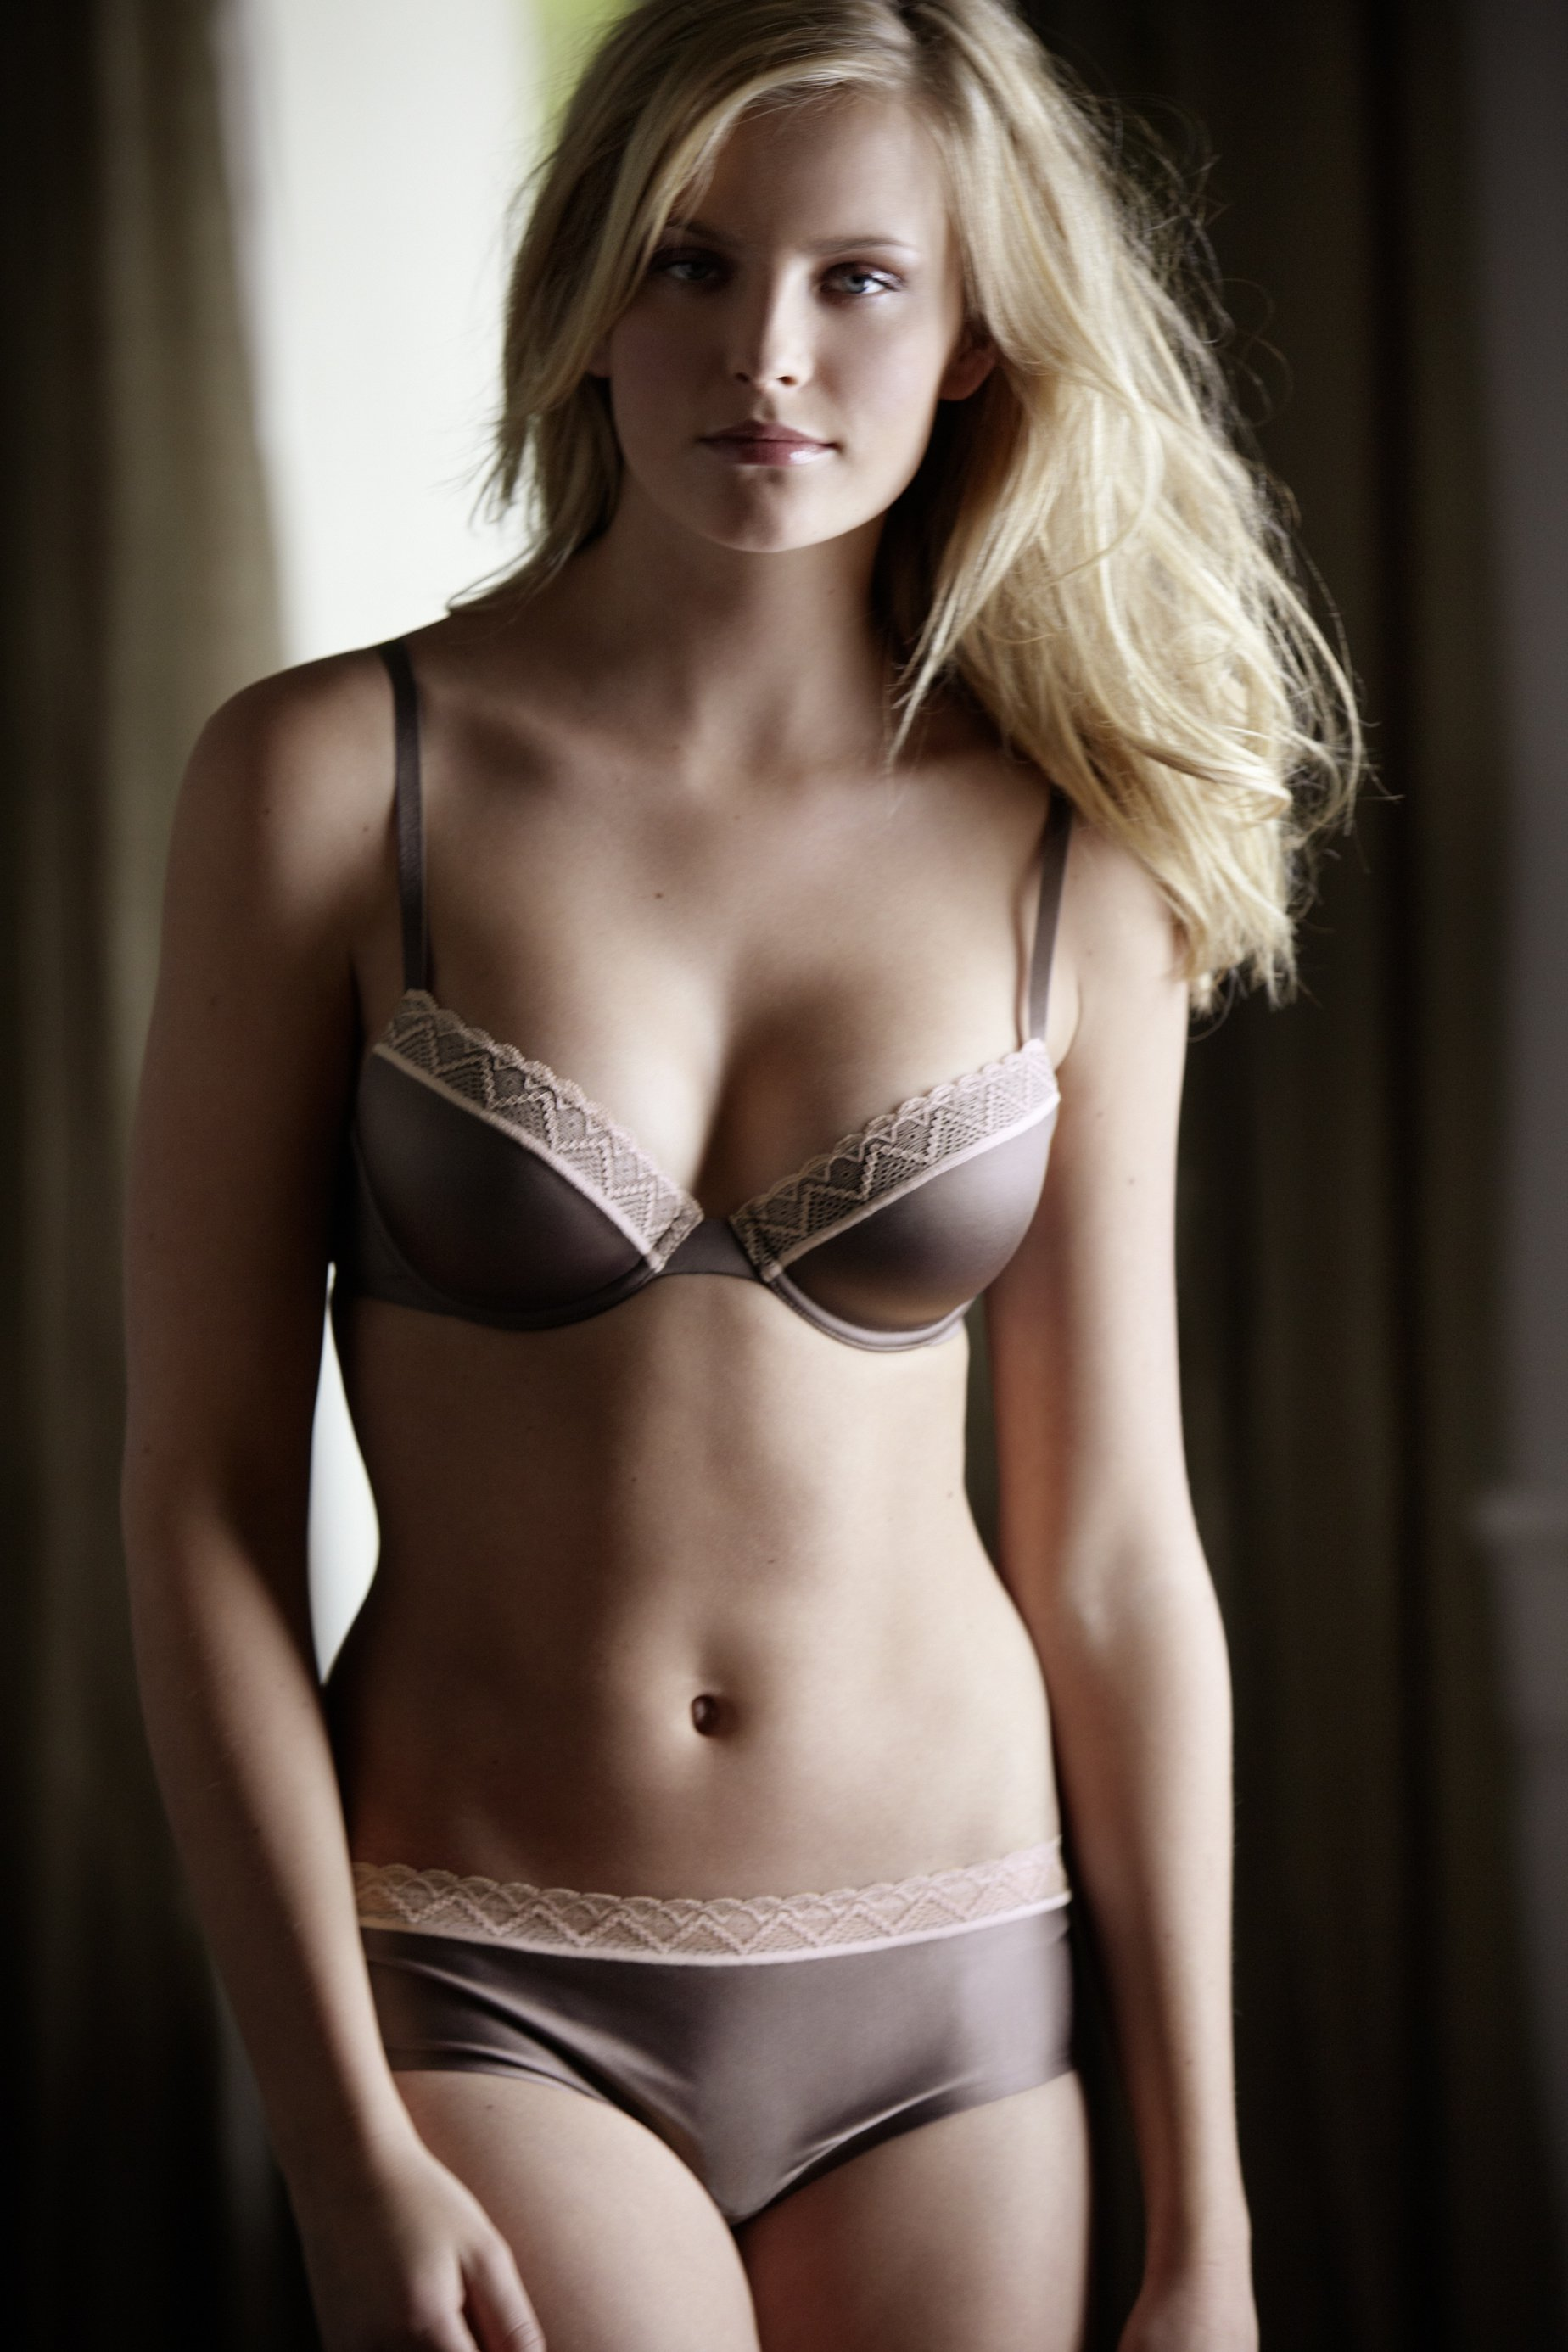 Hot Women With Small Breasts